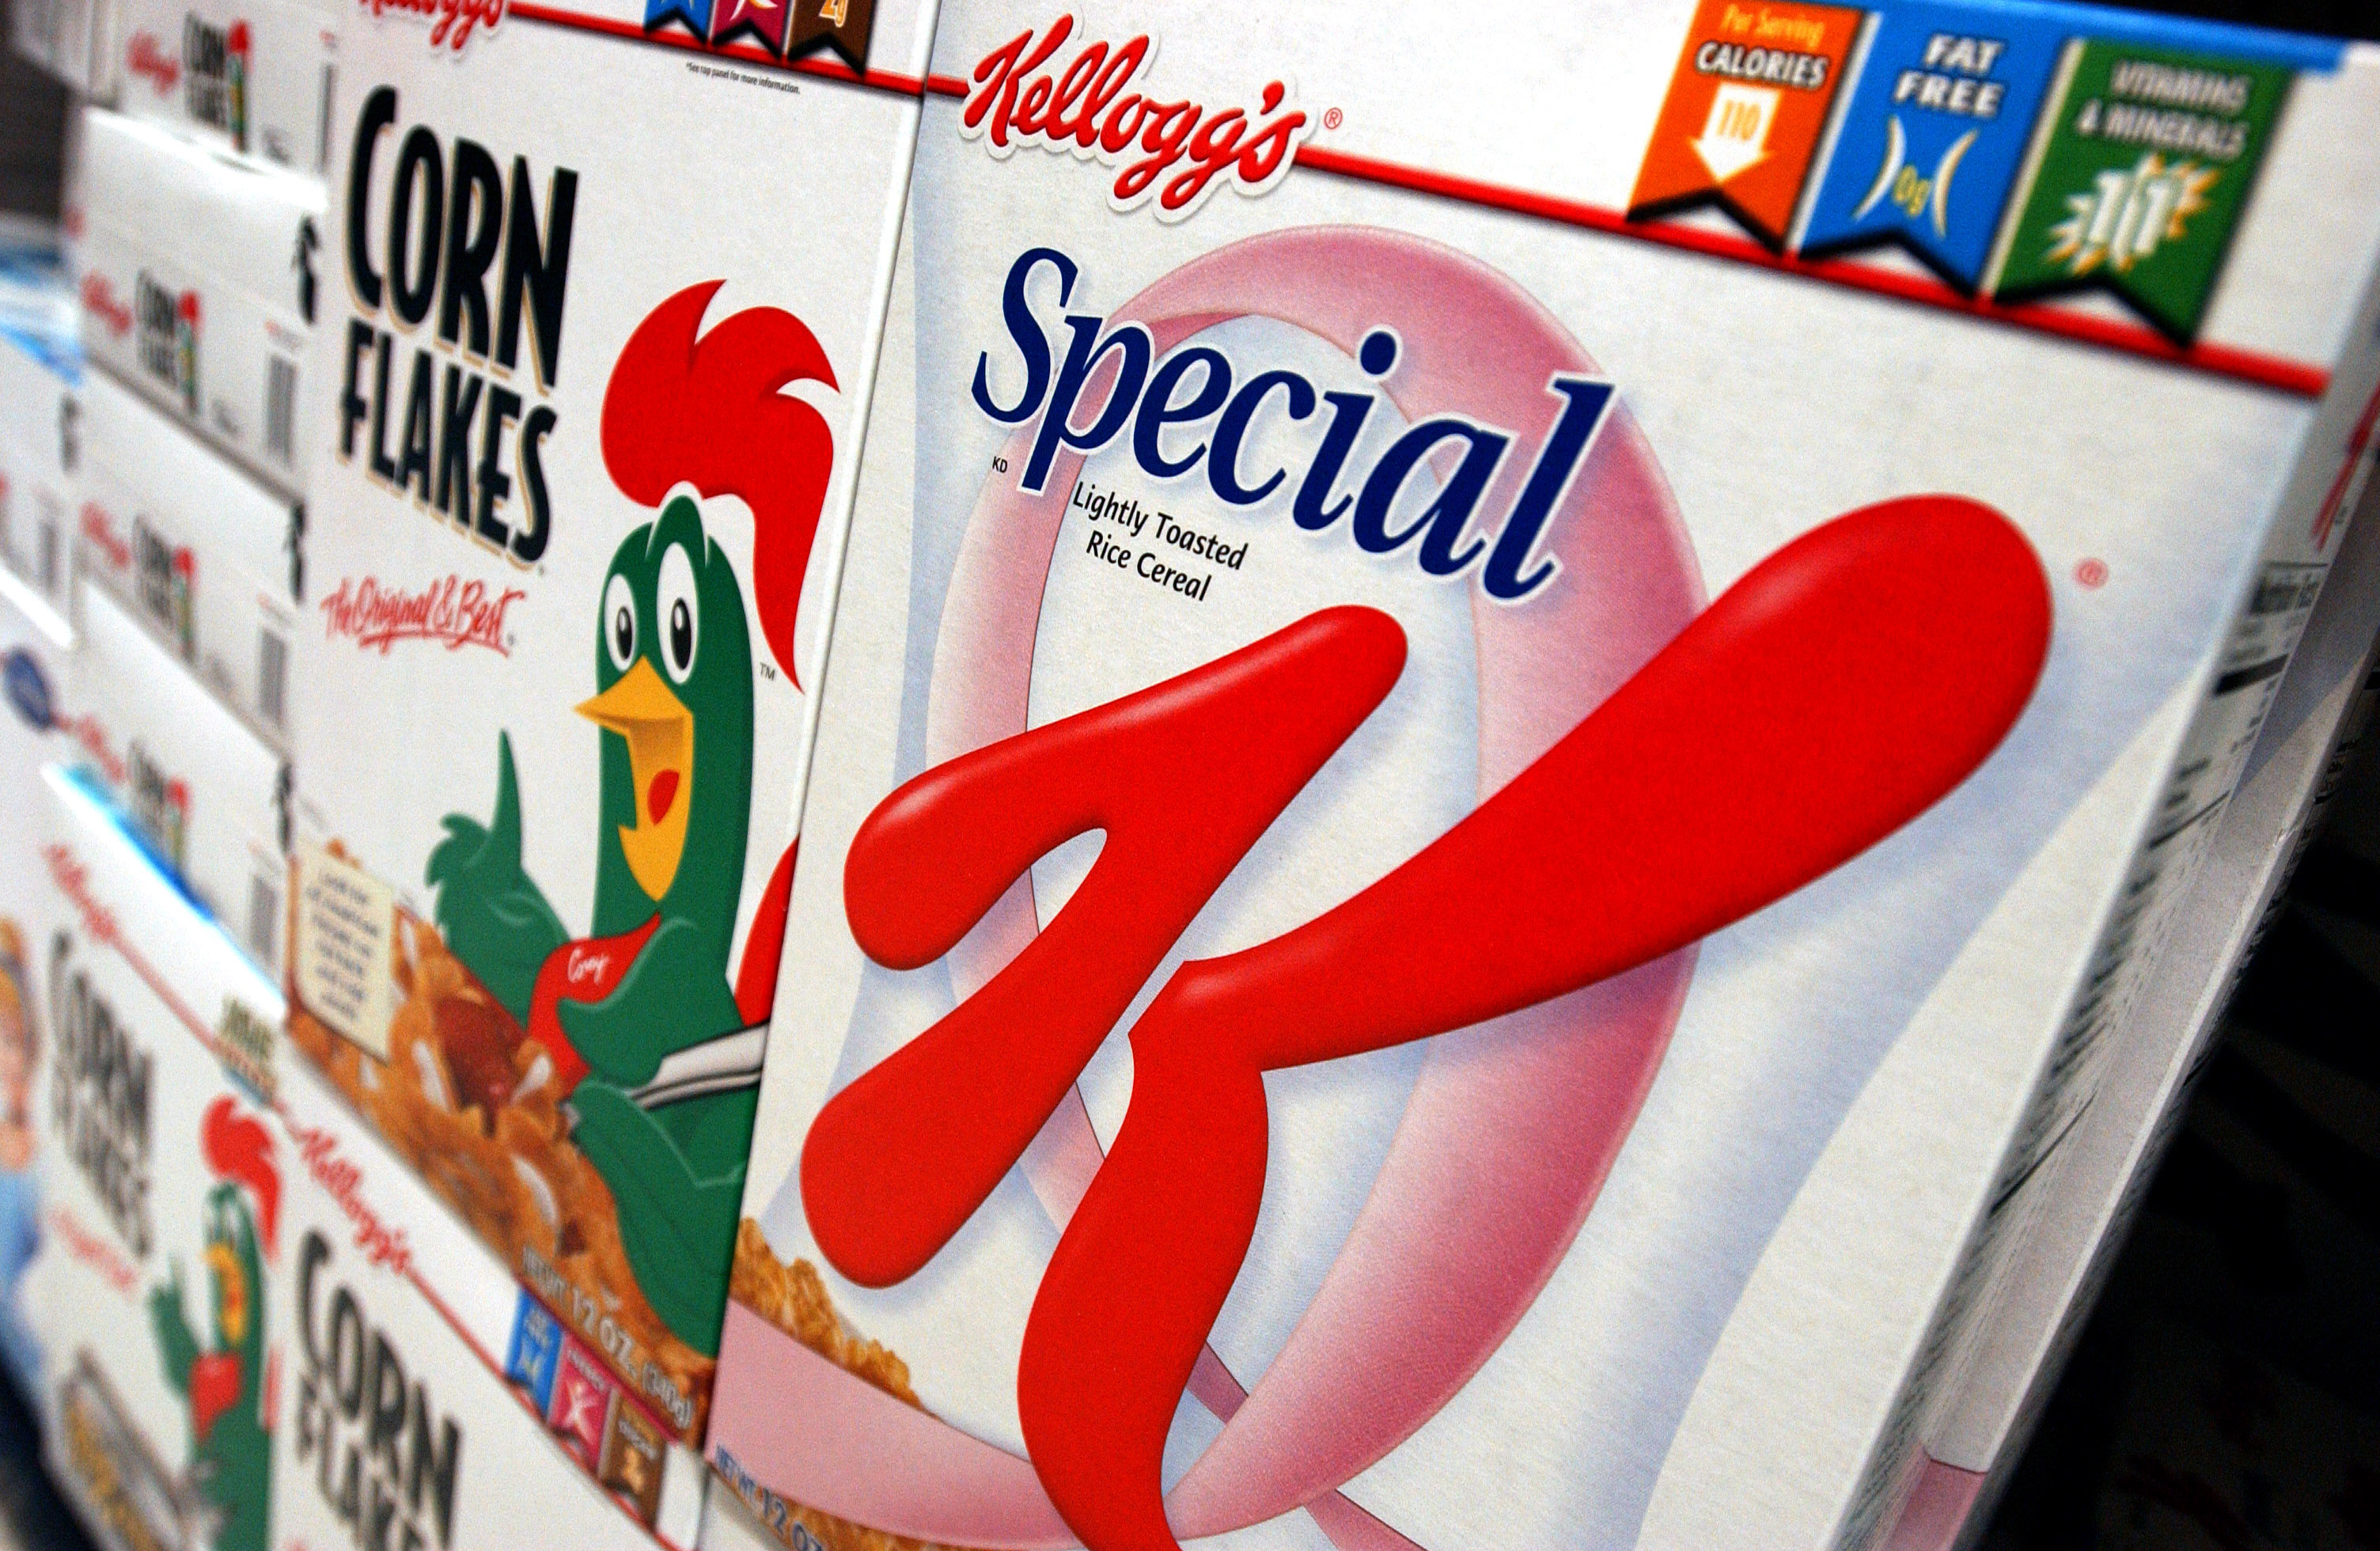 Kellogg's Corn Flakes and Special K cereal boxes are display